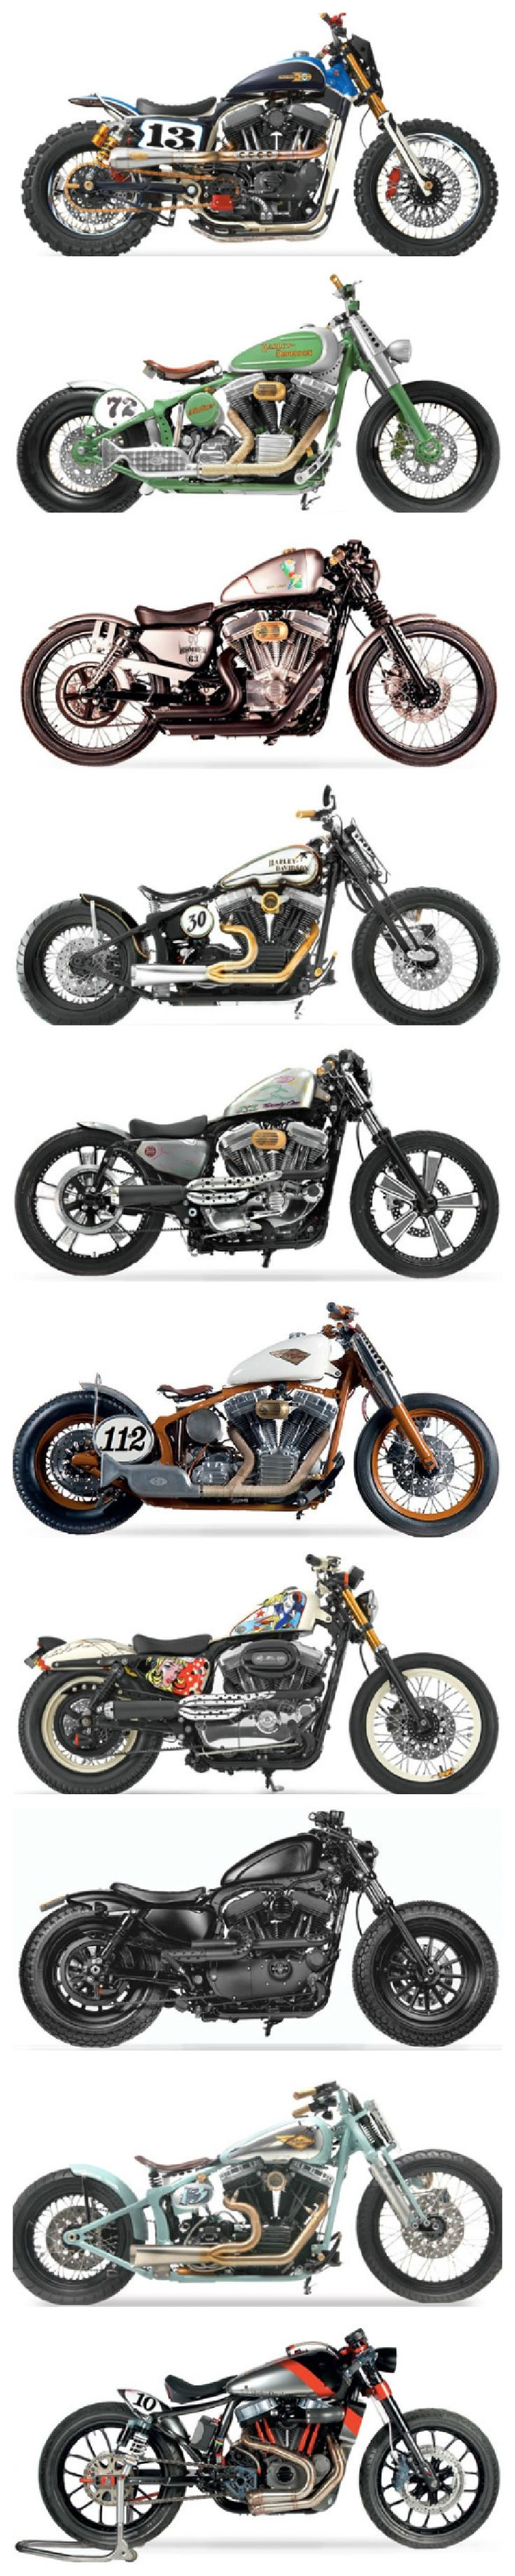 Custom Harleys From Europe - very fine collection of some Café Racers and Trackers.